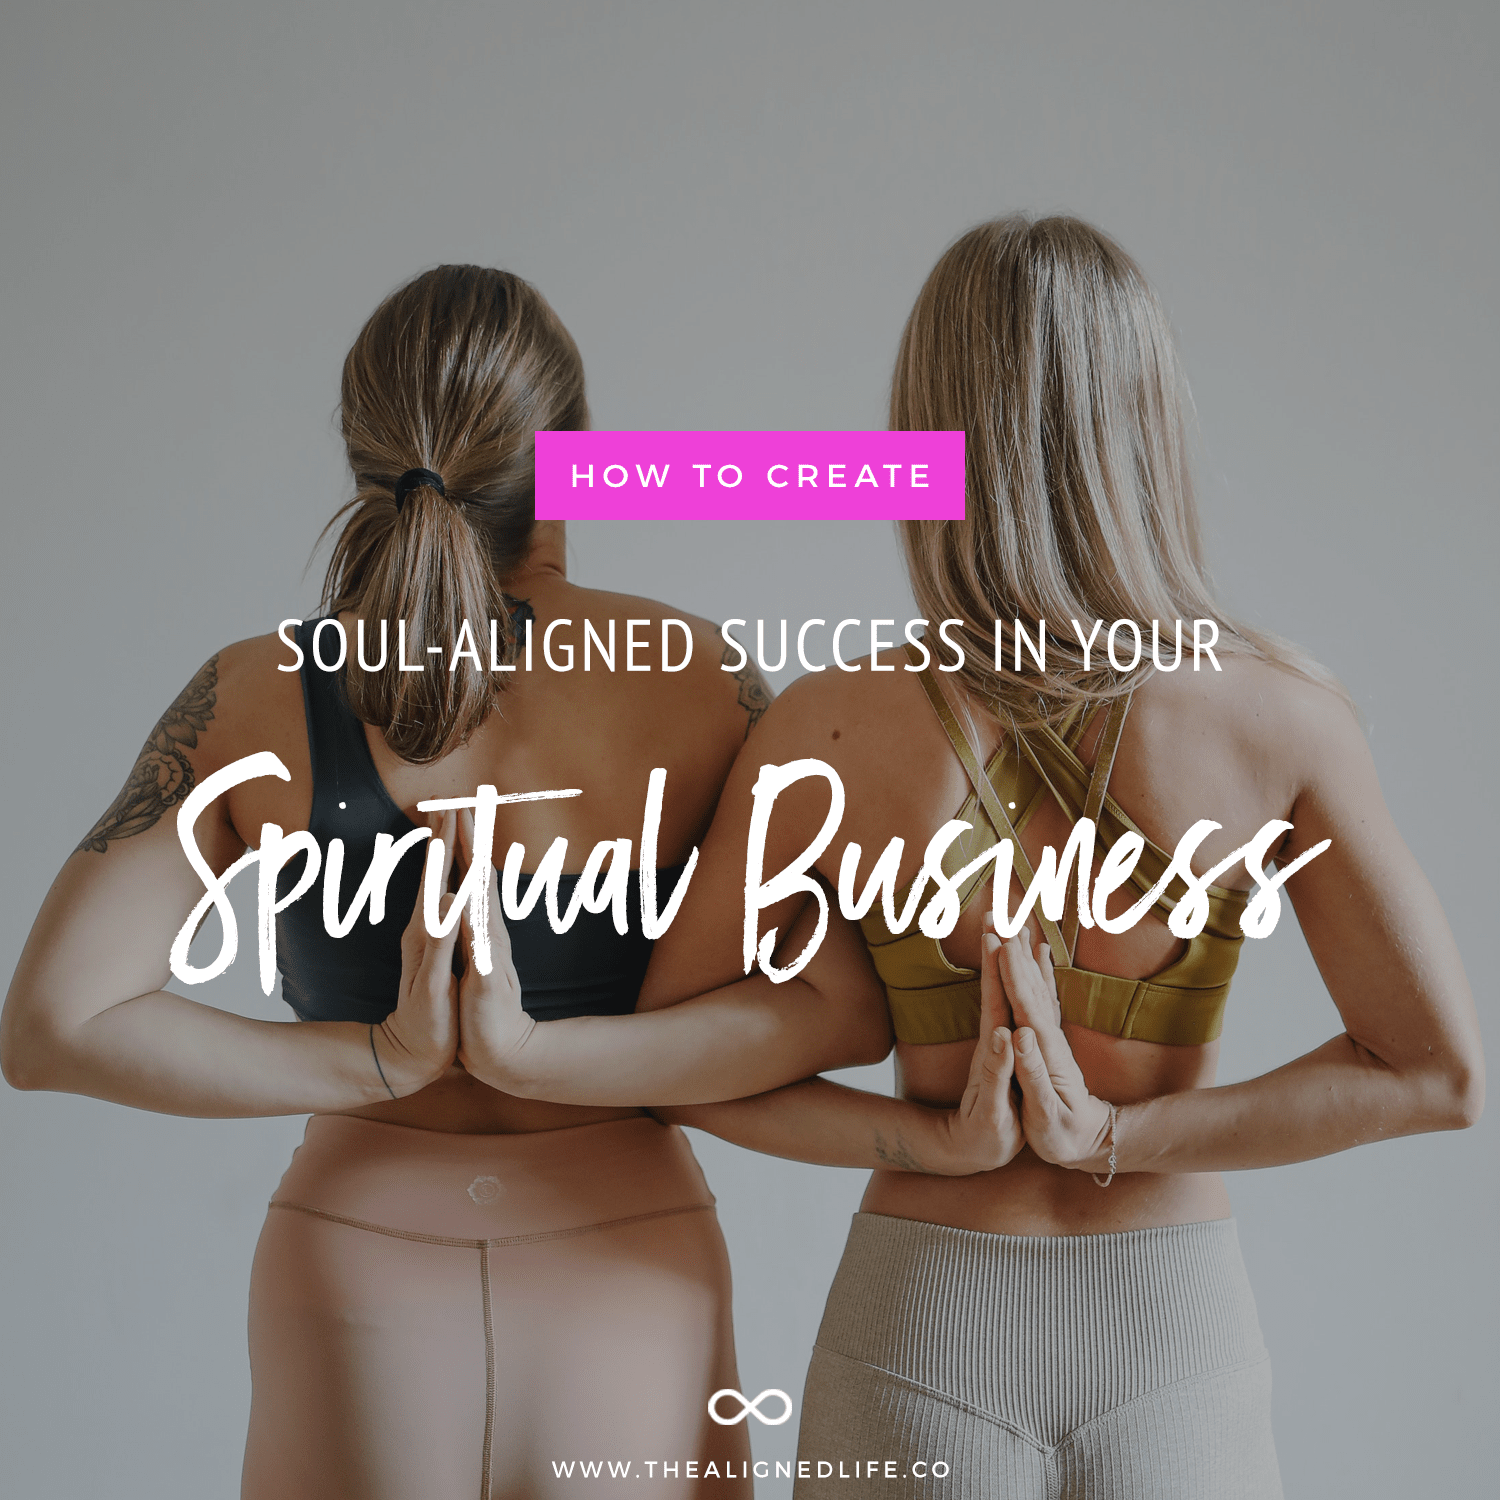 Create Soul-Aligned Success In Your Spiritual Business